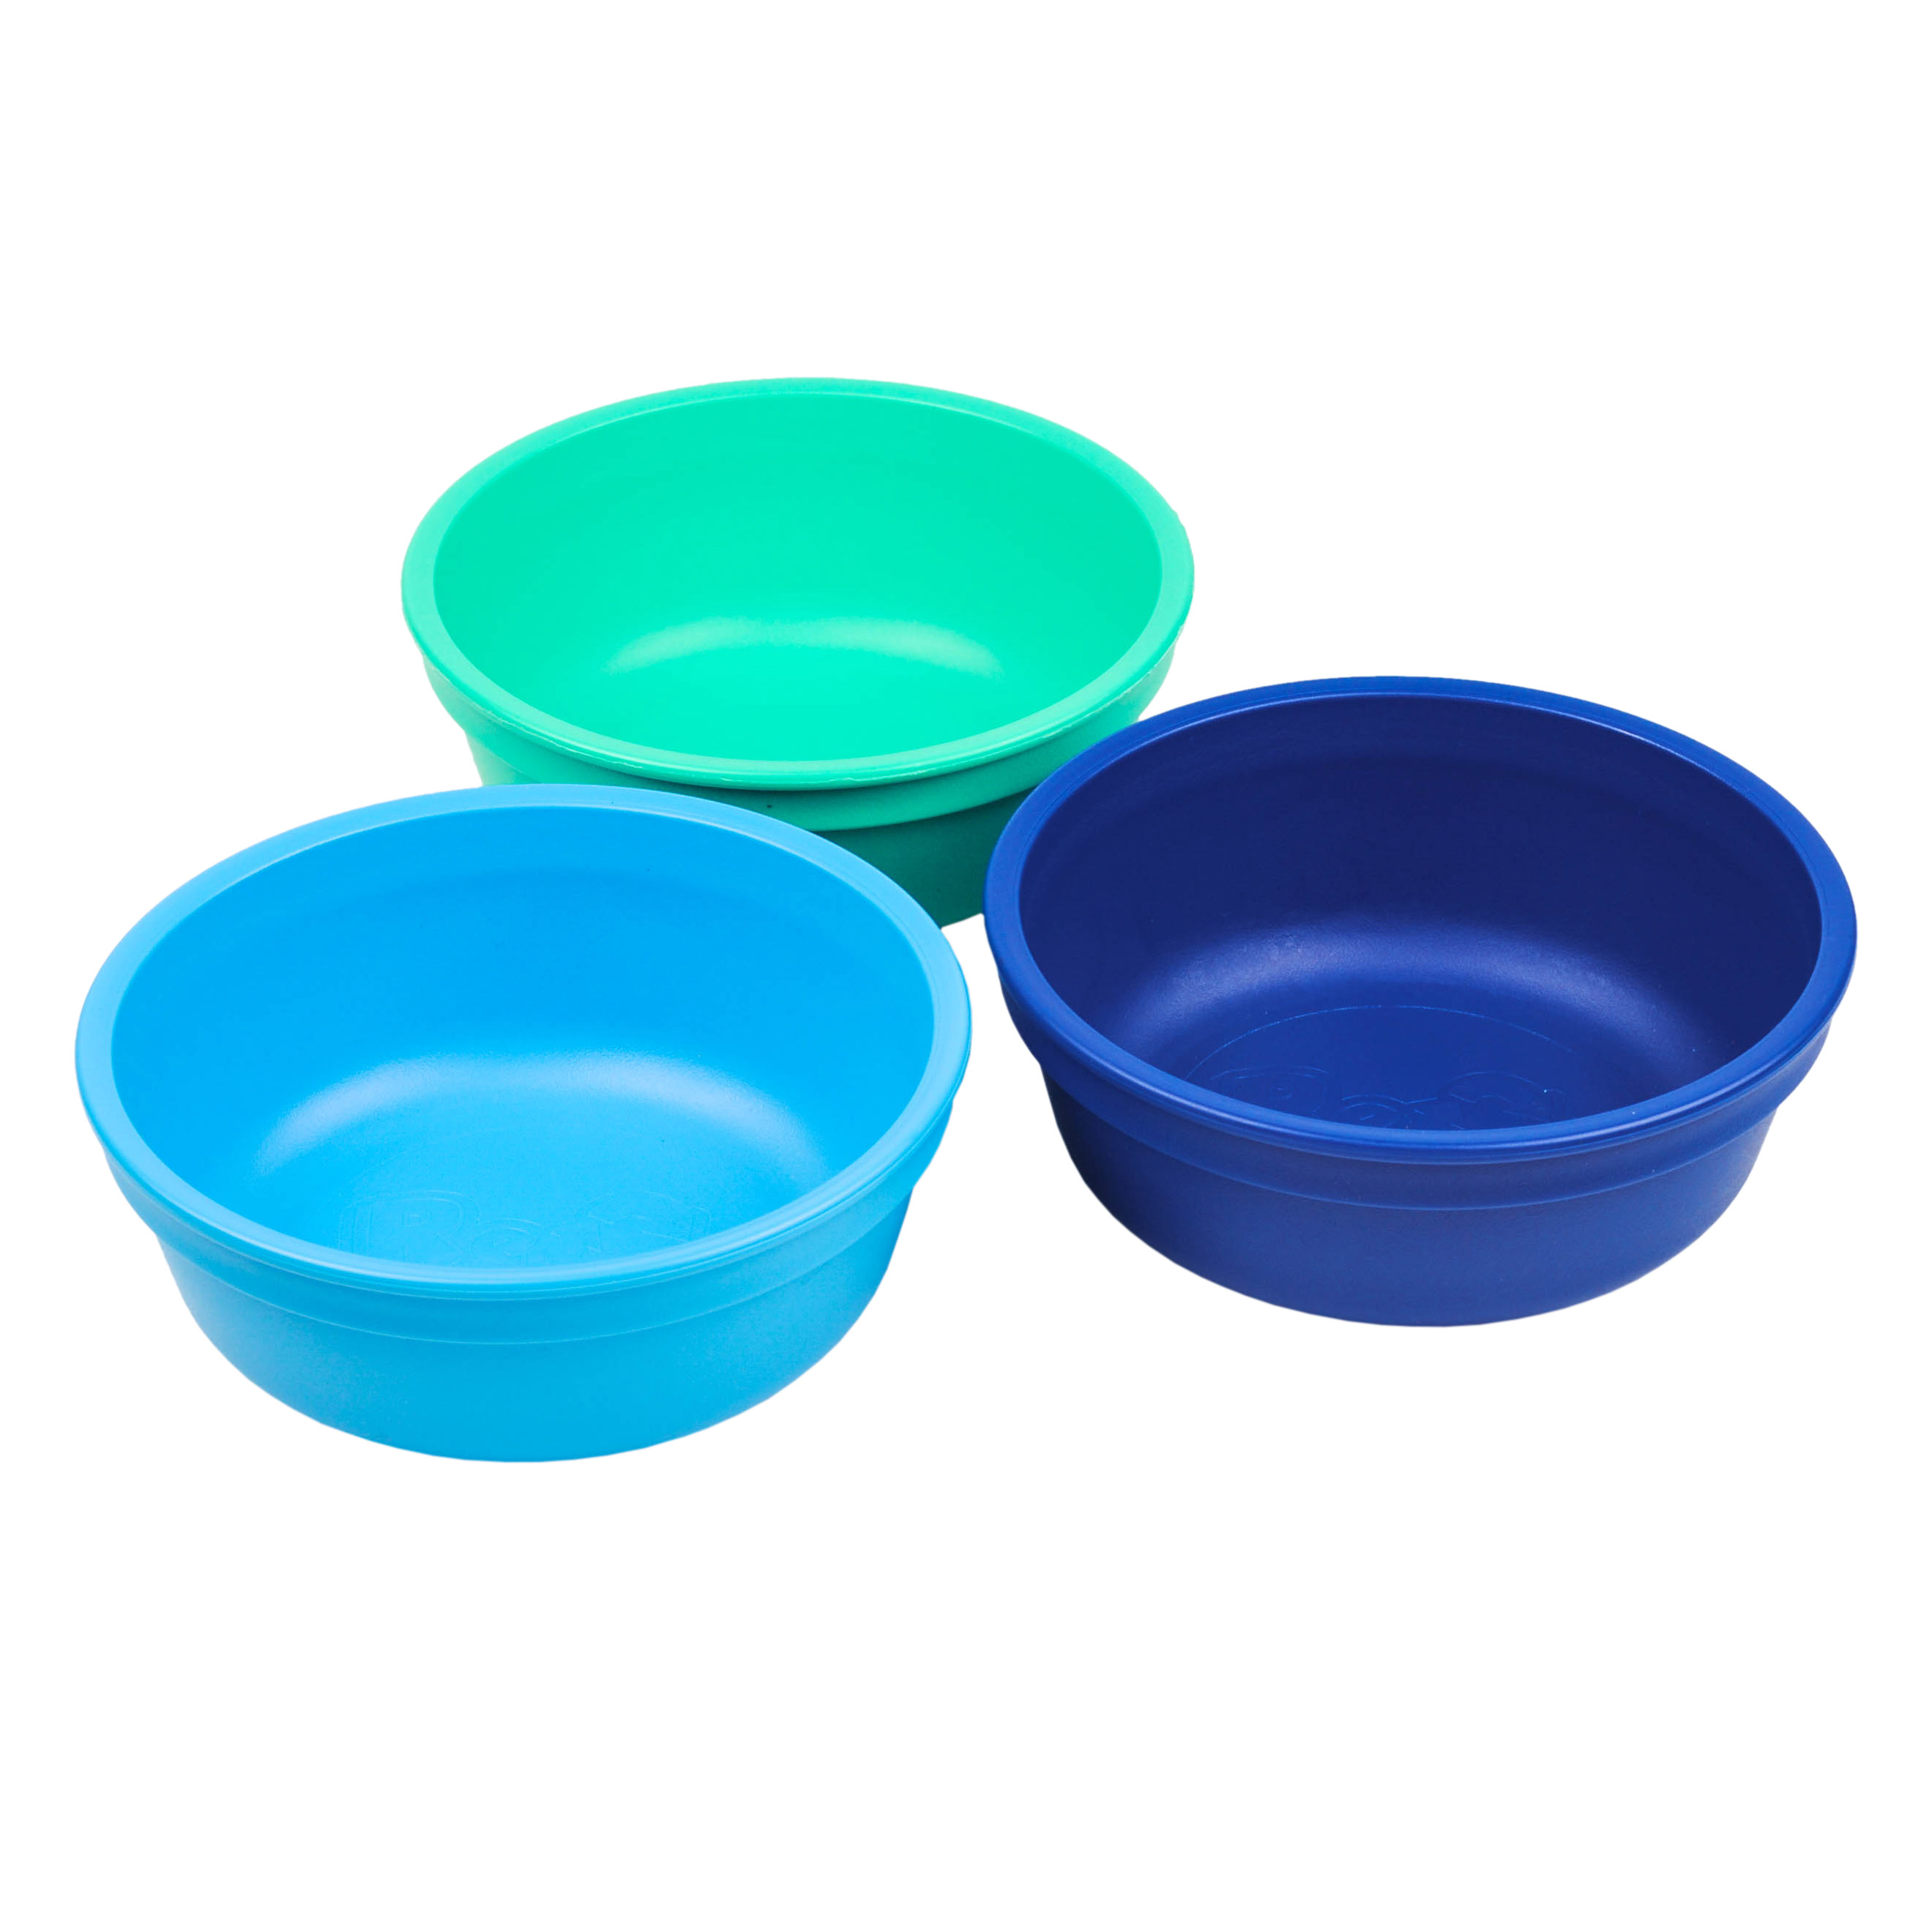 """Re-Play Made in The USA 3pk Toddler Feeding Deep Bowls for Easy Baby, Toddler and Child Meals - Sky Blue, Aqua, Navy Blue (True Blue, 5"""" bowl) Durable, Dependable and Tough Toddler Bowls!"""